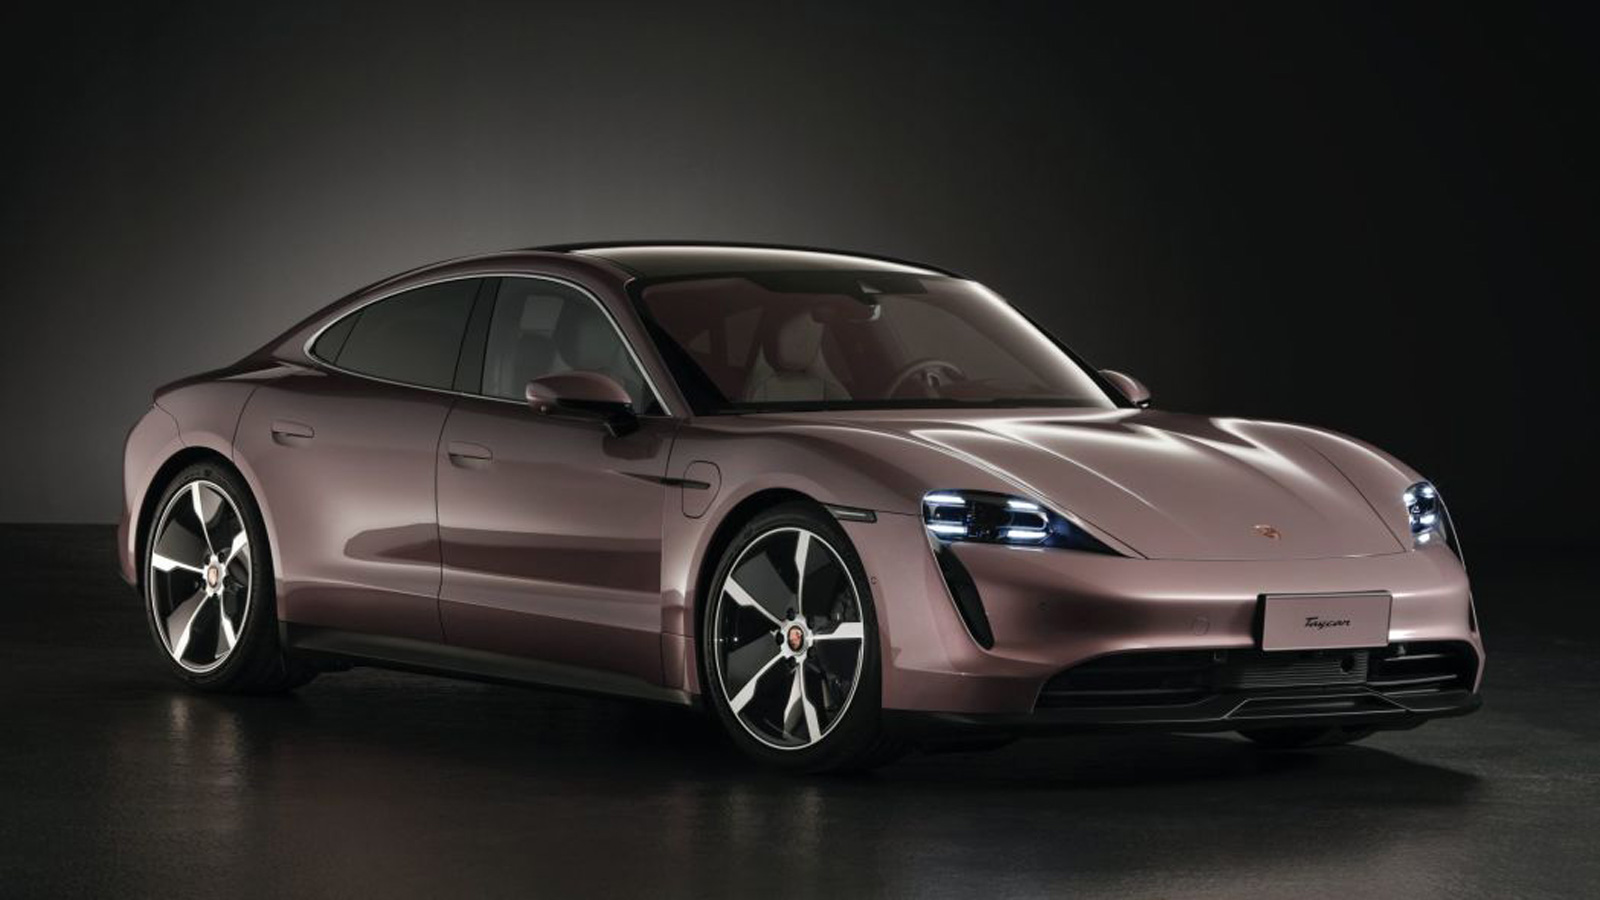 Porsche unveils more affordable rear-wheel drive Taycan, but only for China